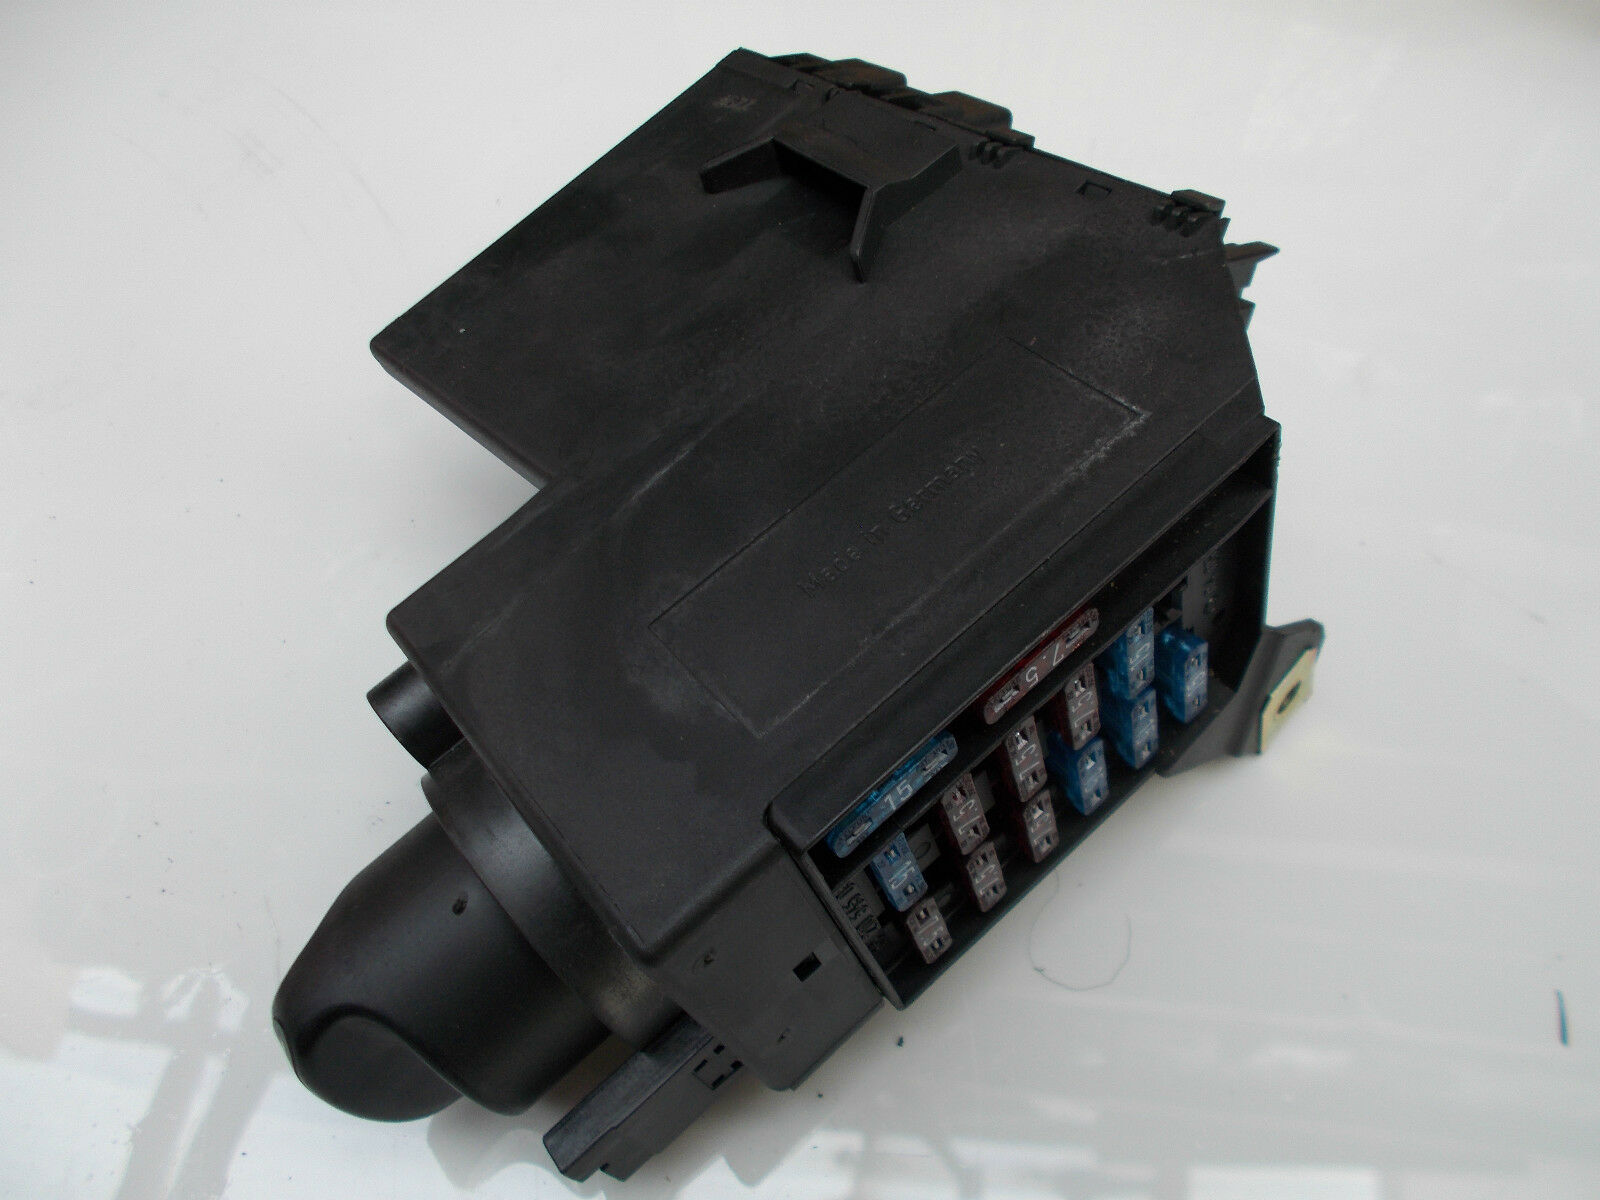 Mercedes W210 E Class Headlight Switch Fusebox 2105450504 2000 Fuse Box 1 Of 3free Shipping